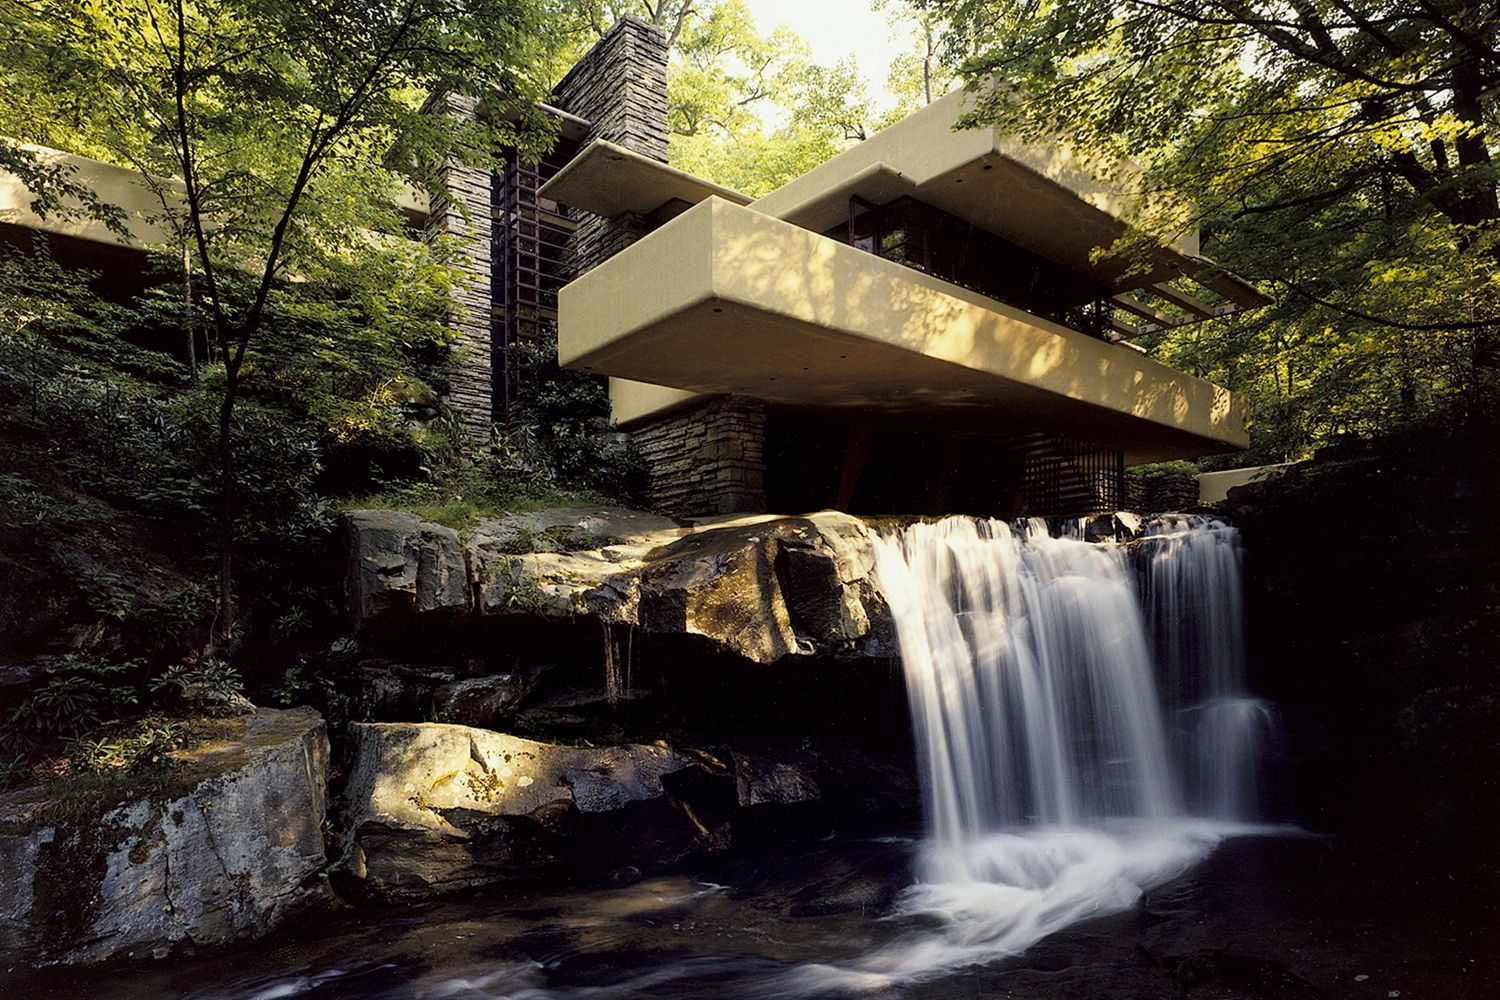 Frank Lloyd Wright's falling waters